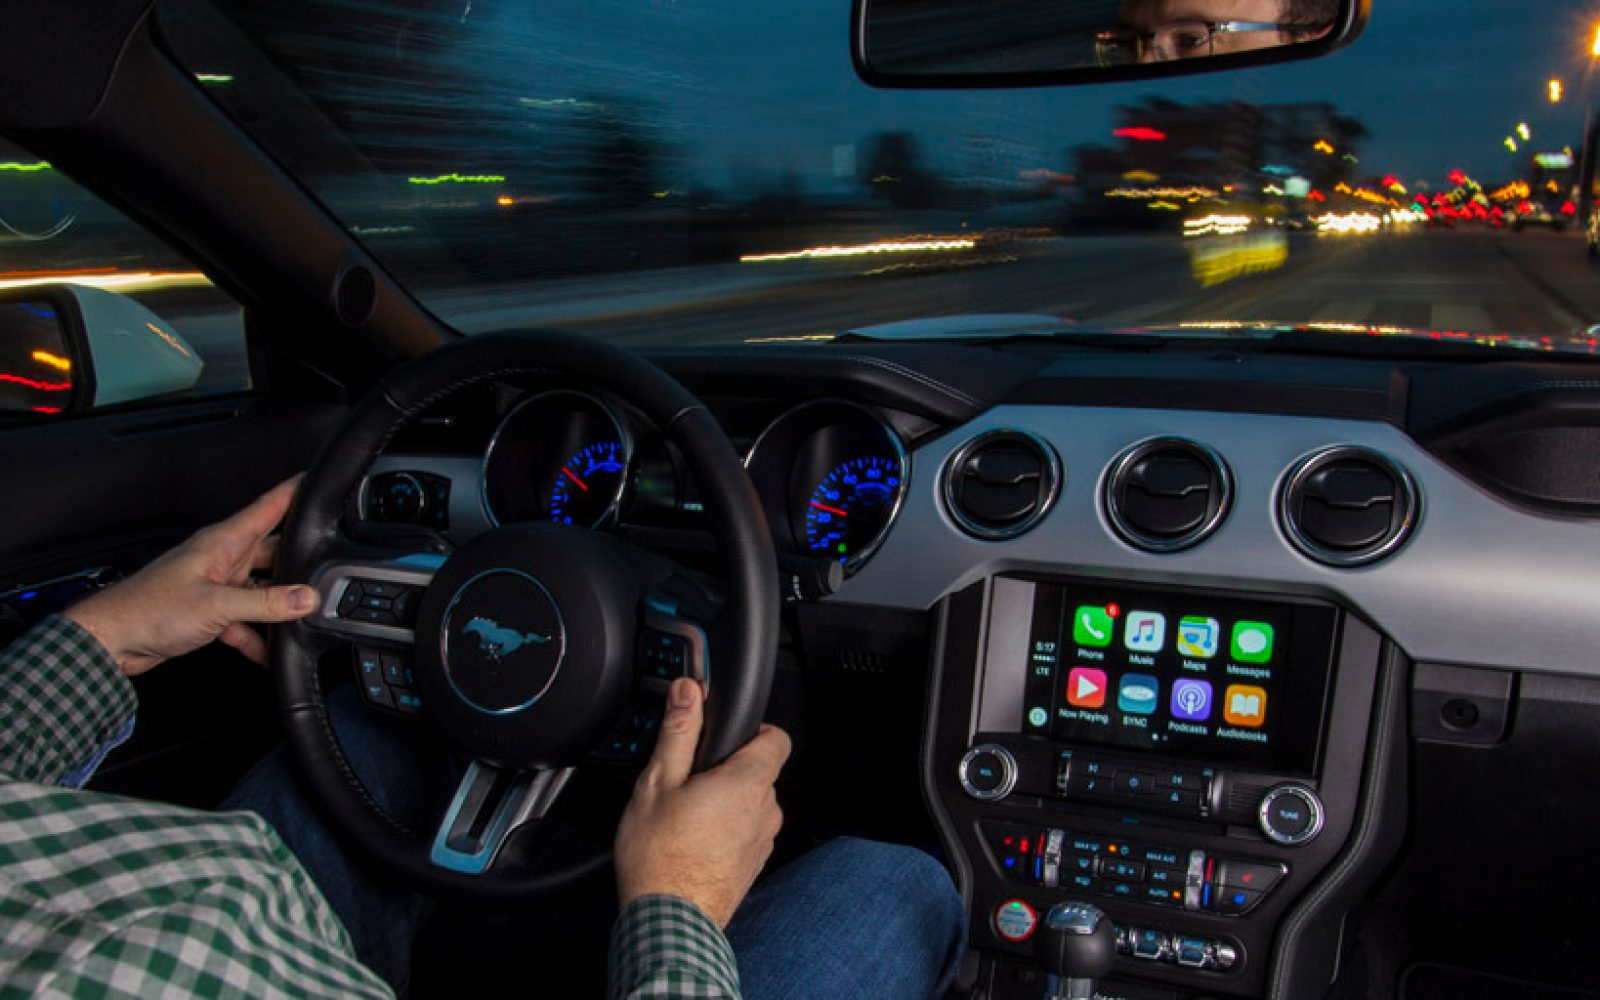 Report: Apple continues hiring for Apple Car w/ BlackBerry's QNX founder joining team